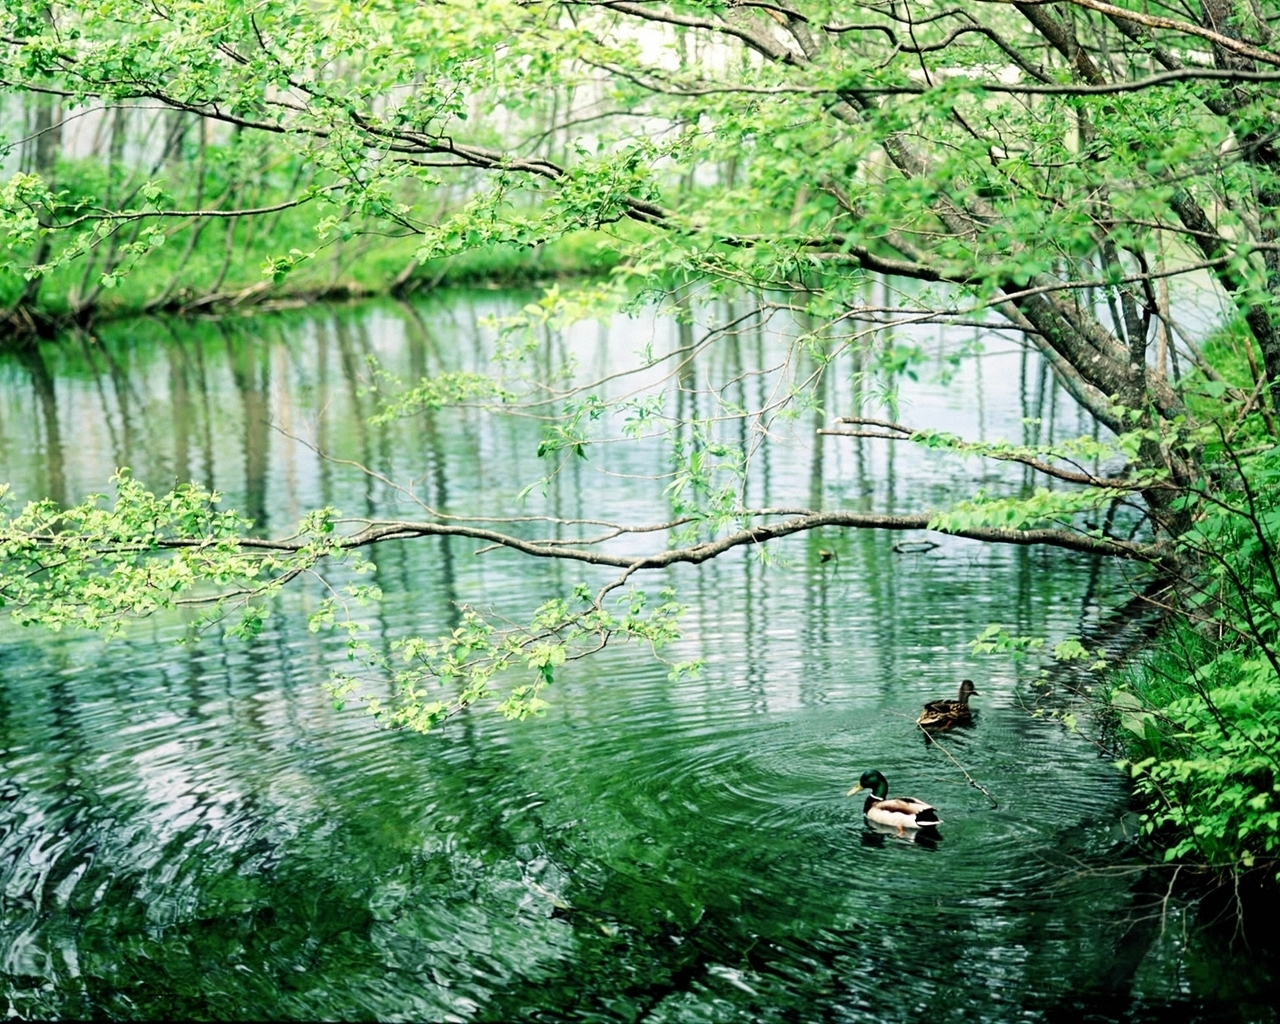 Forest River and ducks wallpaper - nature theme, birds